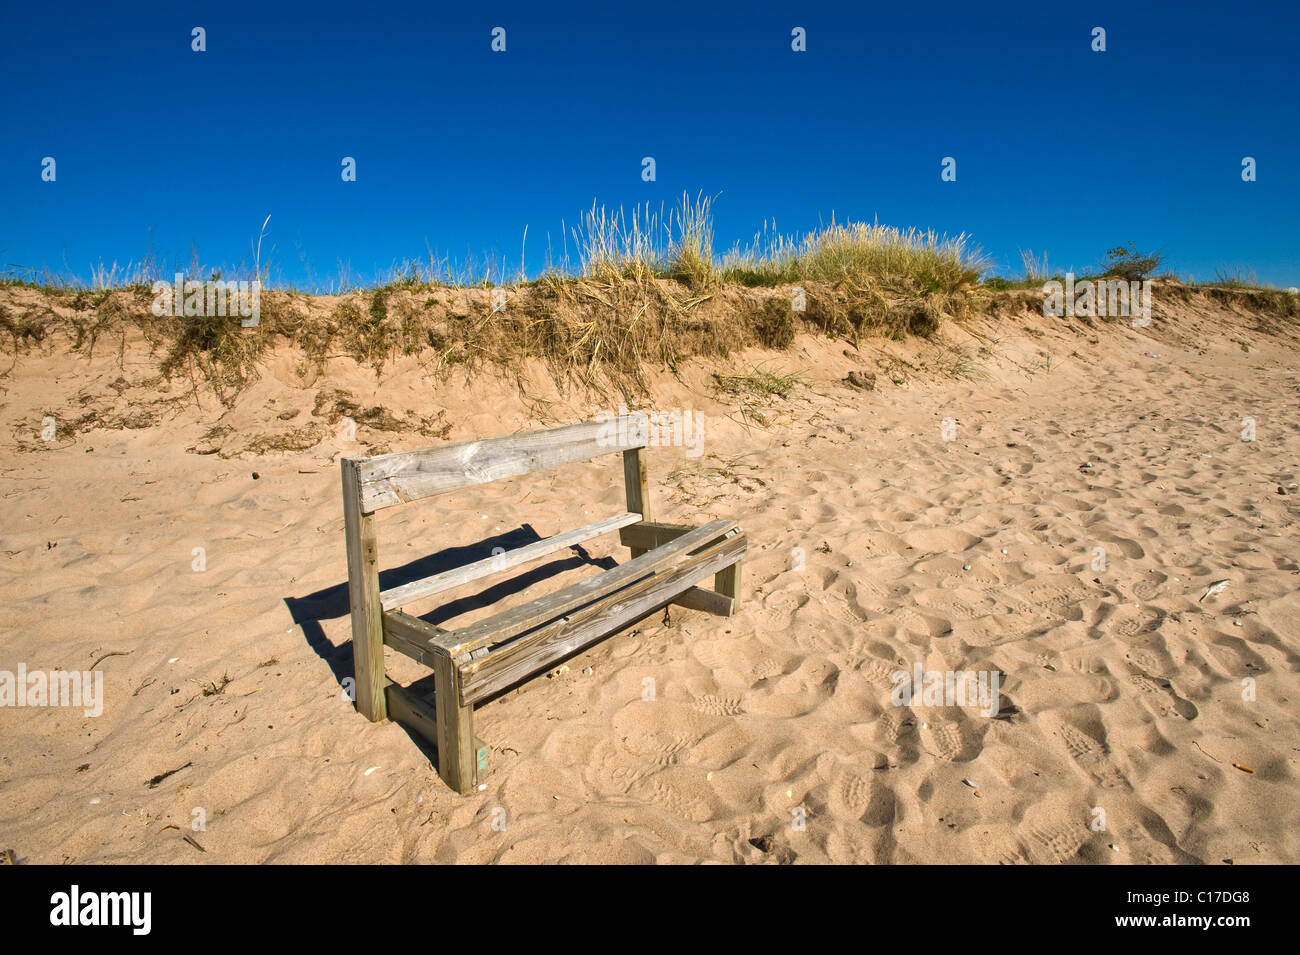 Bench in a ruinous condition in the dunes, Harielaide peninsula, Vilsandi National Park, Saaremaa, island in the - Stock Image